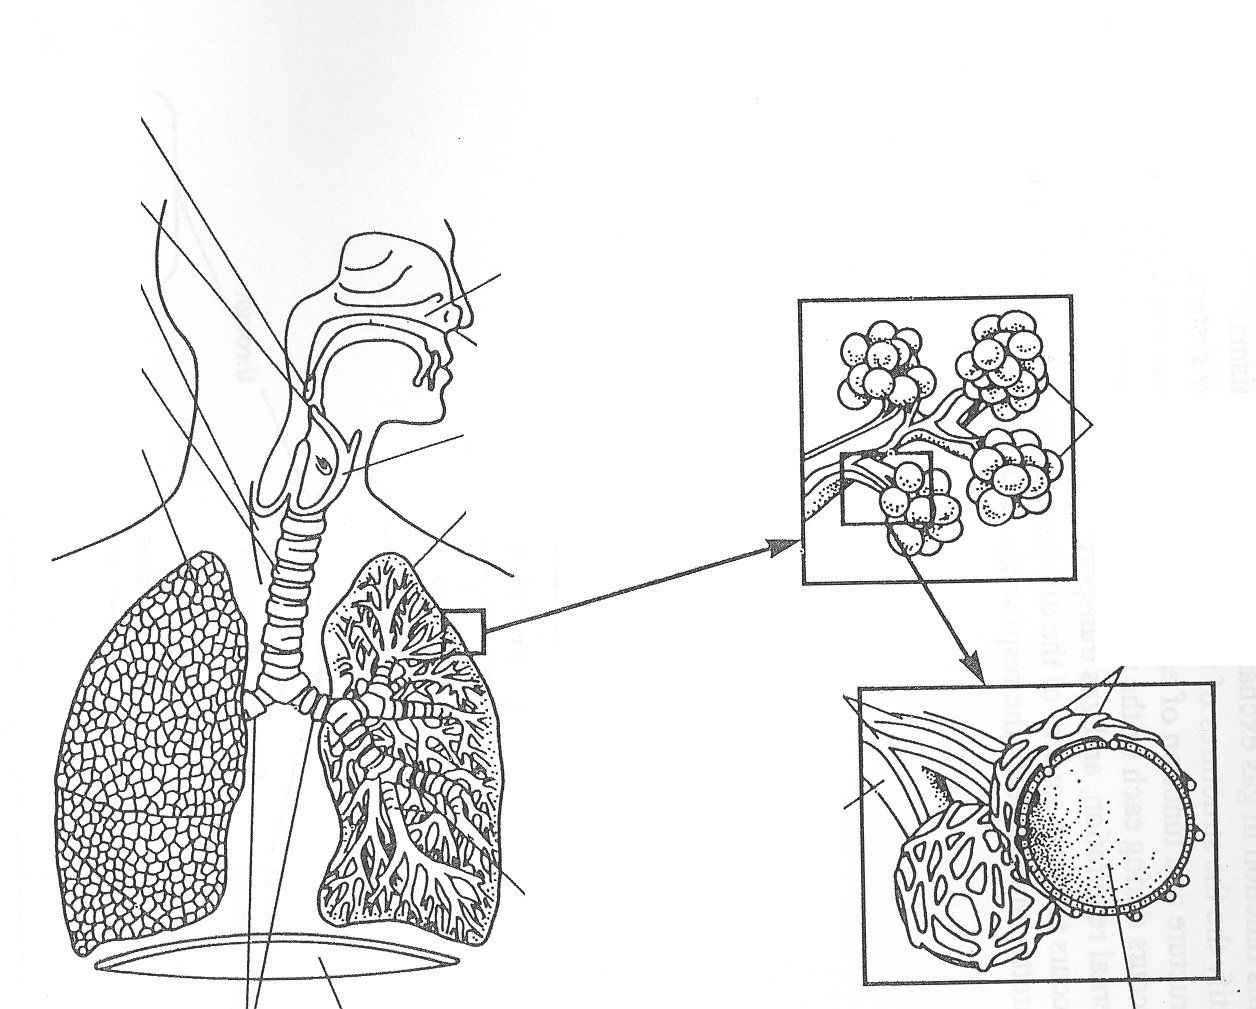 respiratory system coloring page respiratory system coloring page coloring home page respiratory coloring system